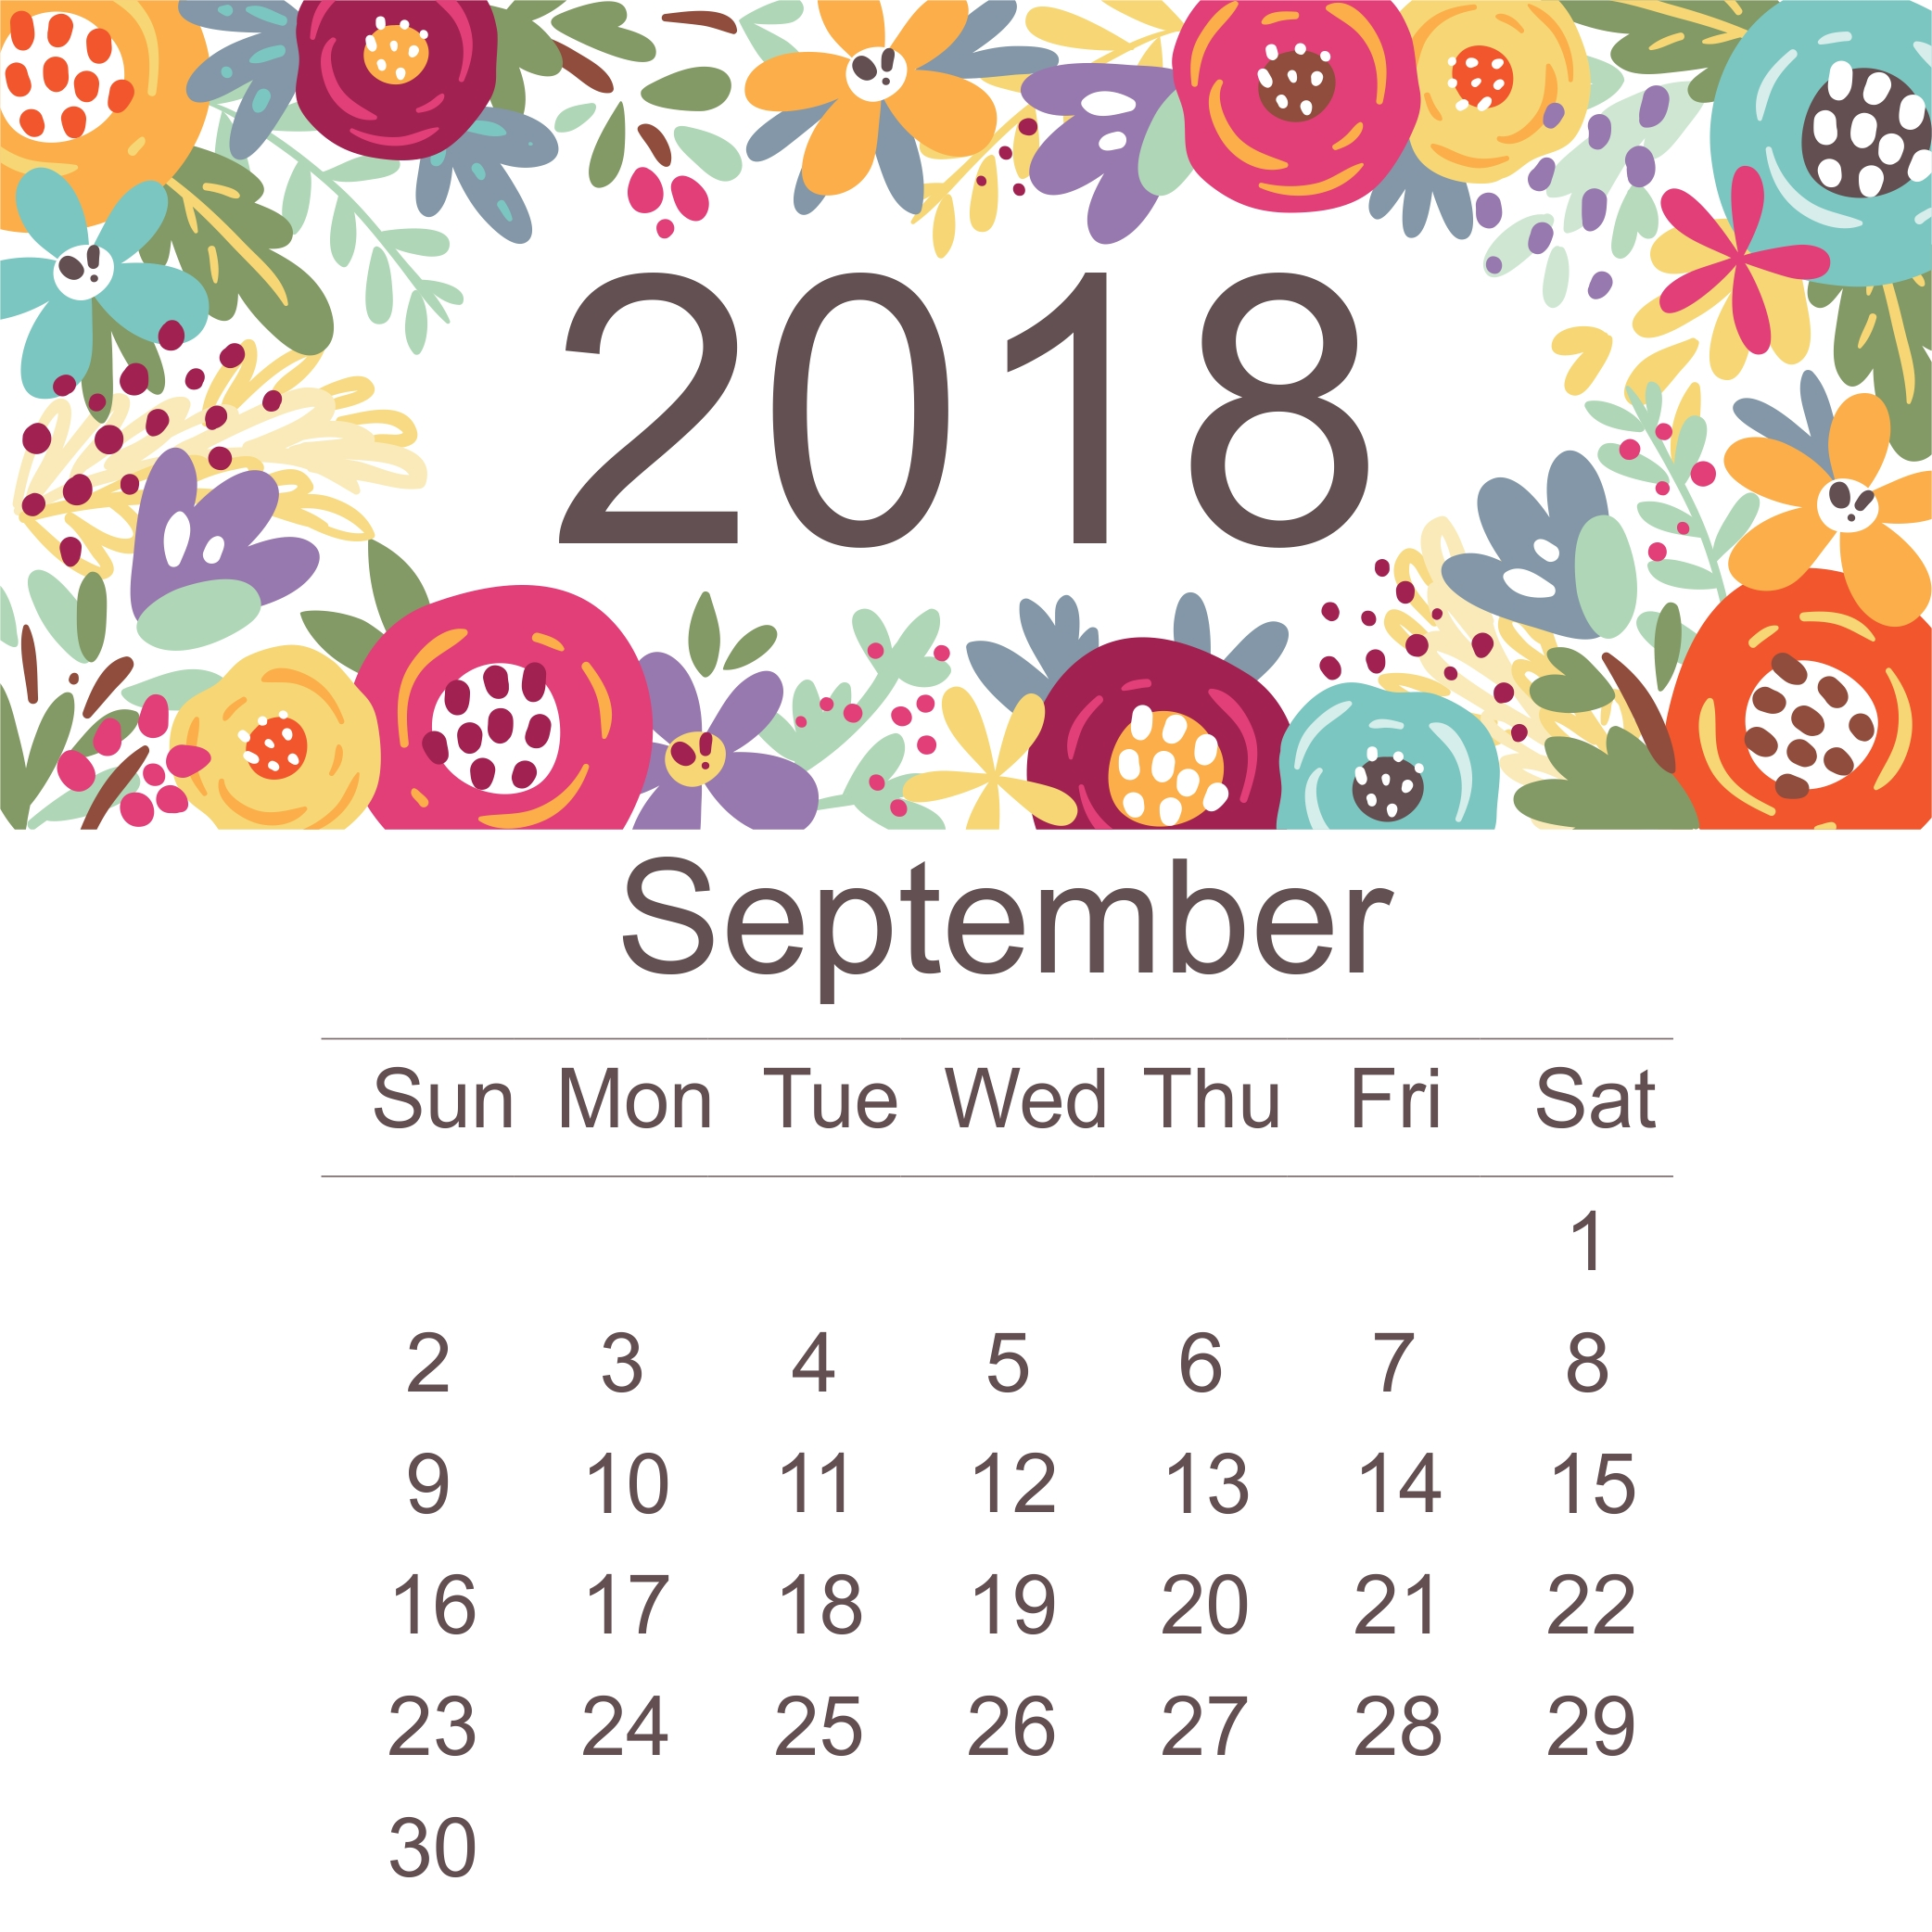 september 2018 calendar printable free site provides september 2018 Stylish Calendar Templates erdferdf